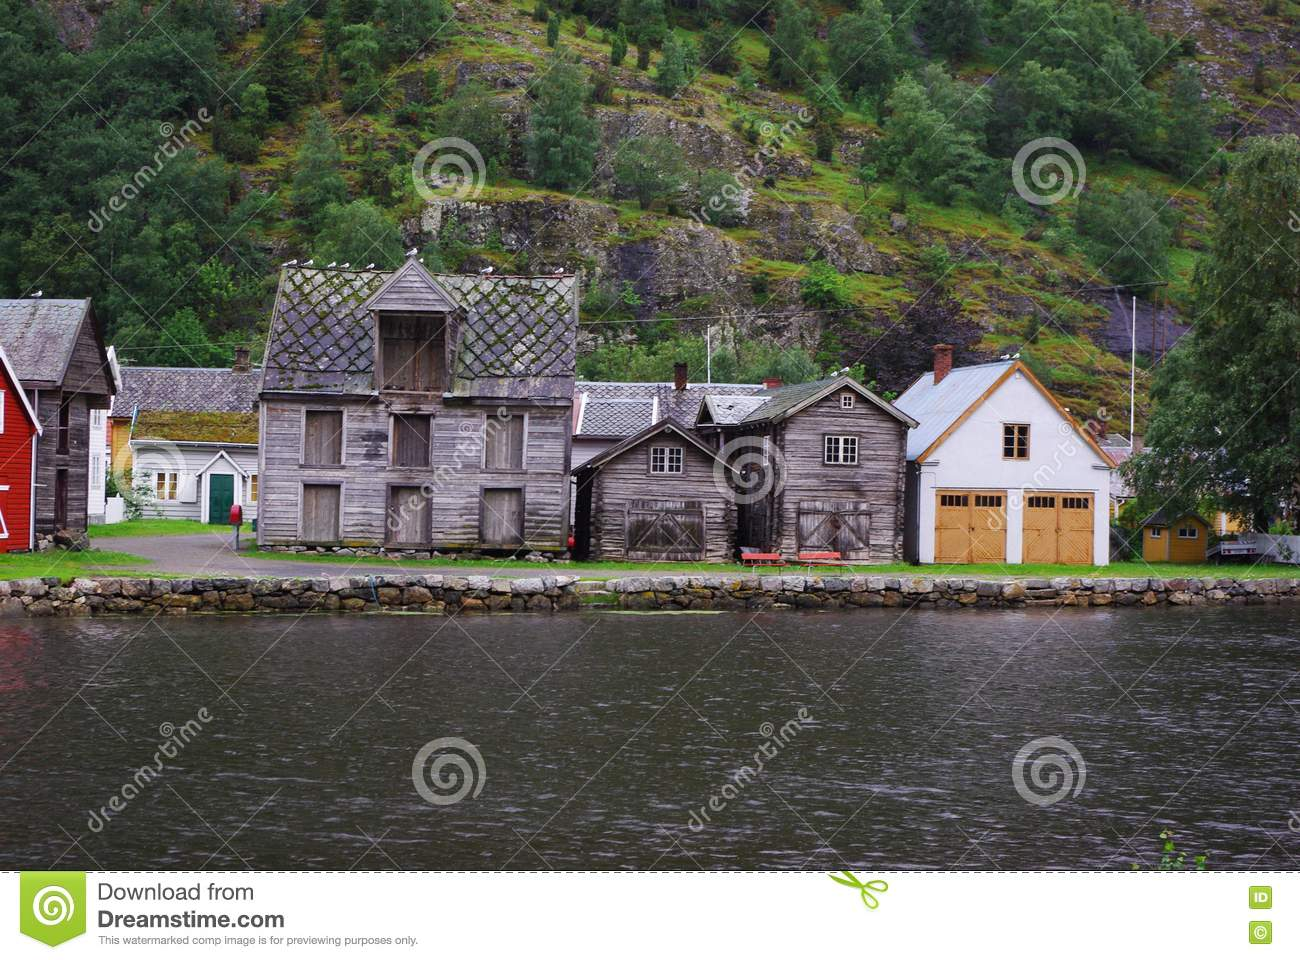 Traditional wooden houses in lyrdal norway royalty free for Norway wooden houses